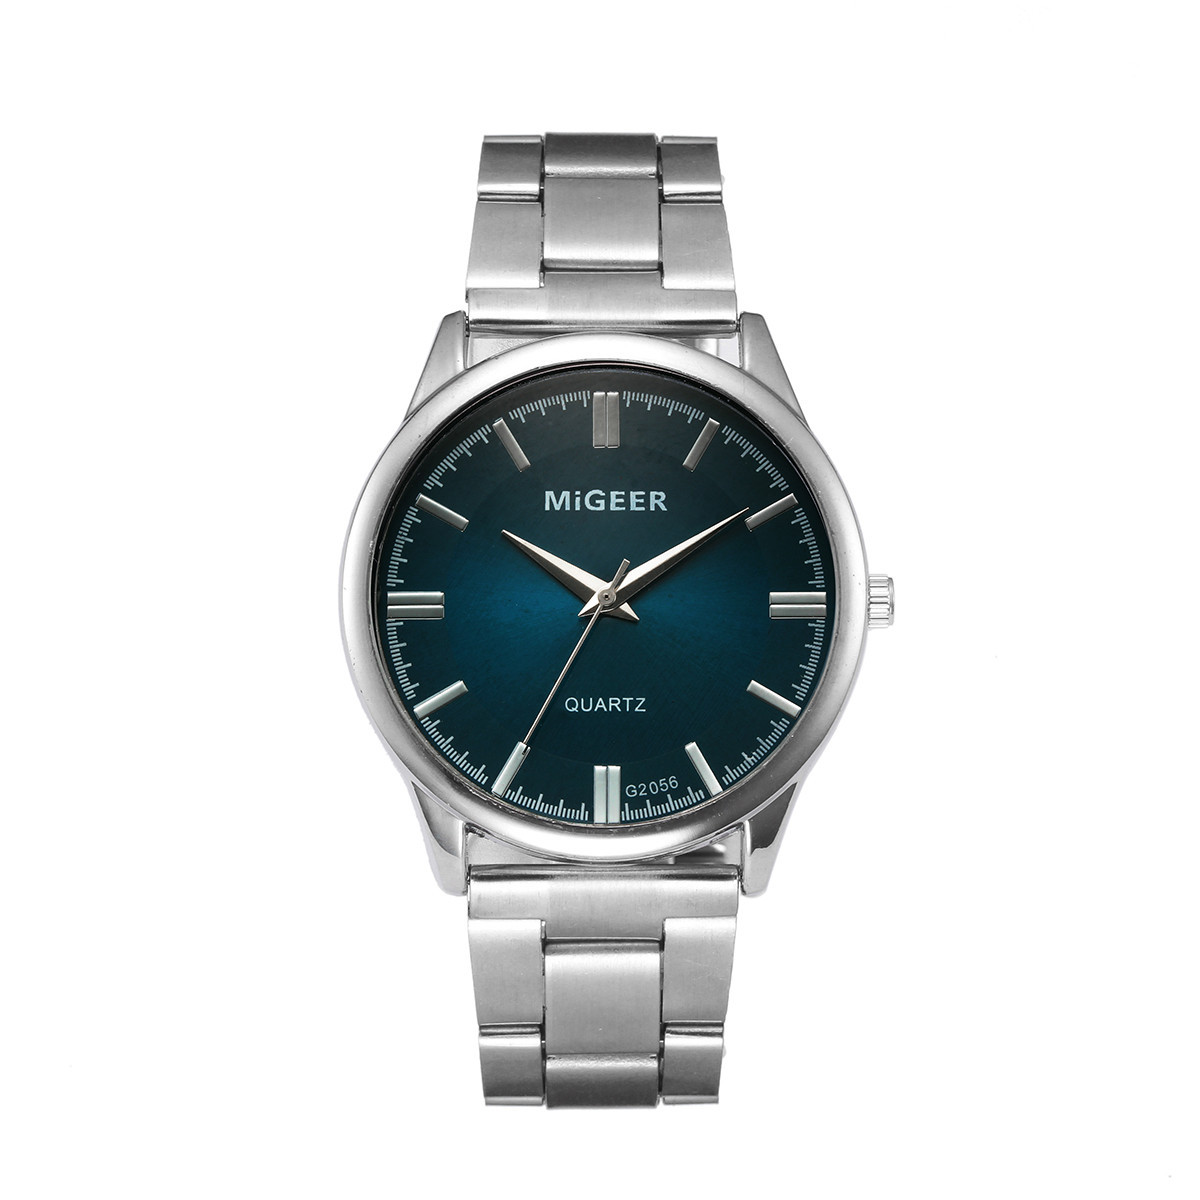 MIGEER Man Watches Crystal Fashion Stainless Steel Analog Quartz watch male watch for men quartz silver mens wristwatches